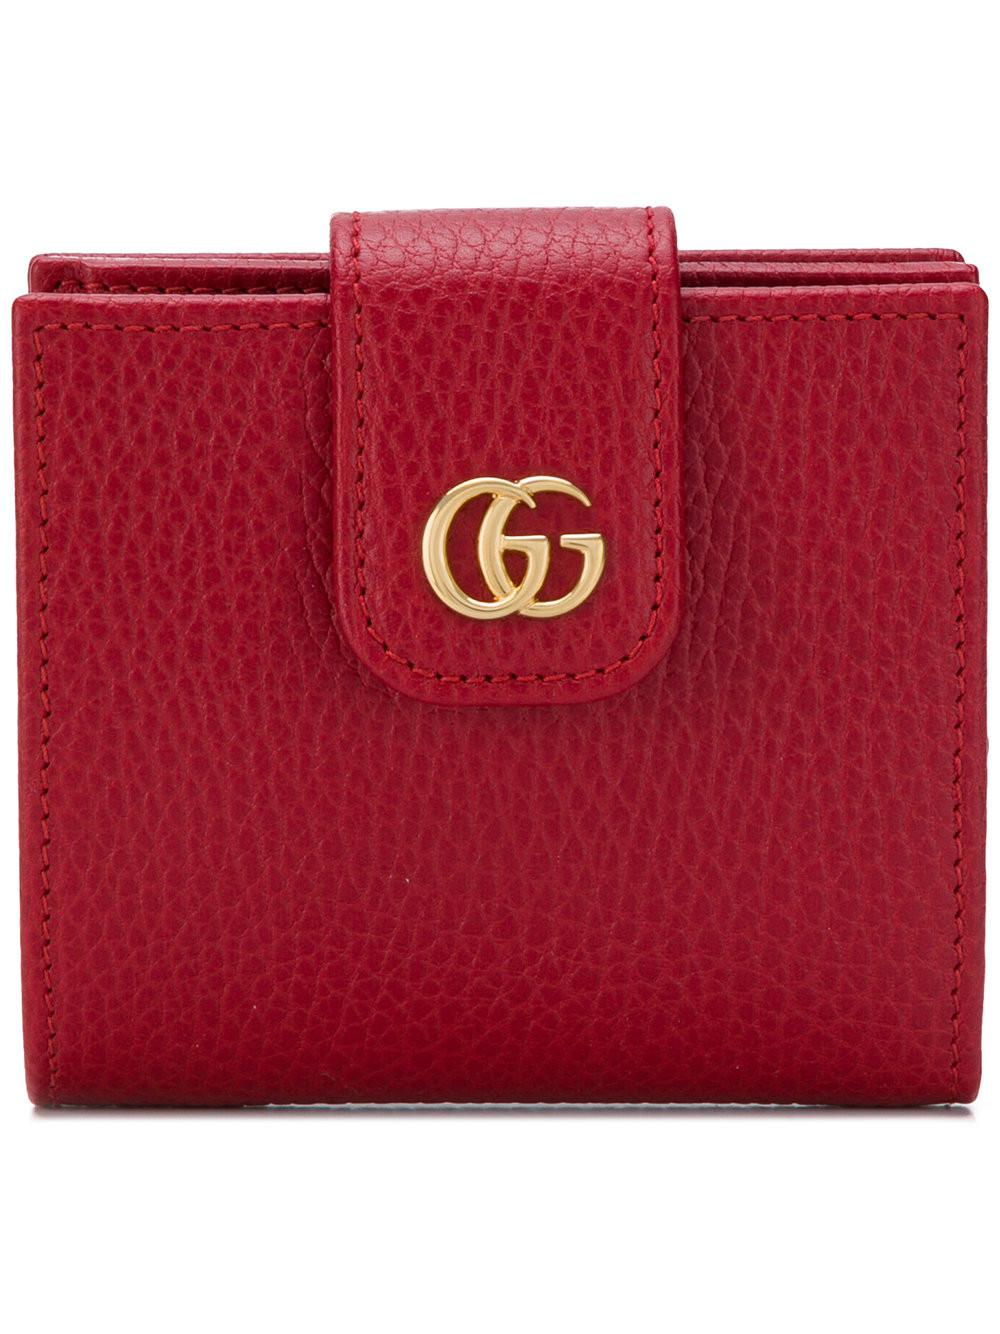 c0b2ea0504f Lyst - Gucci Gg Marmont Card Holder in Red